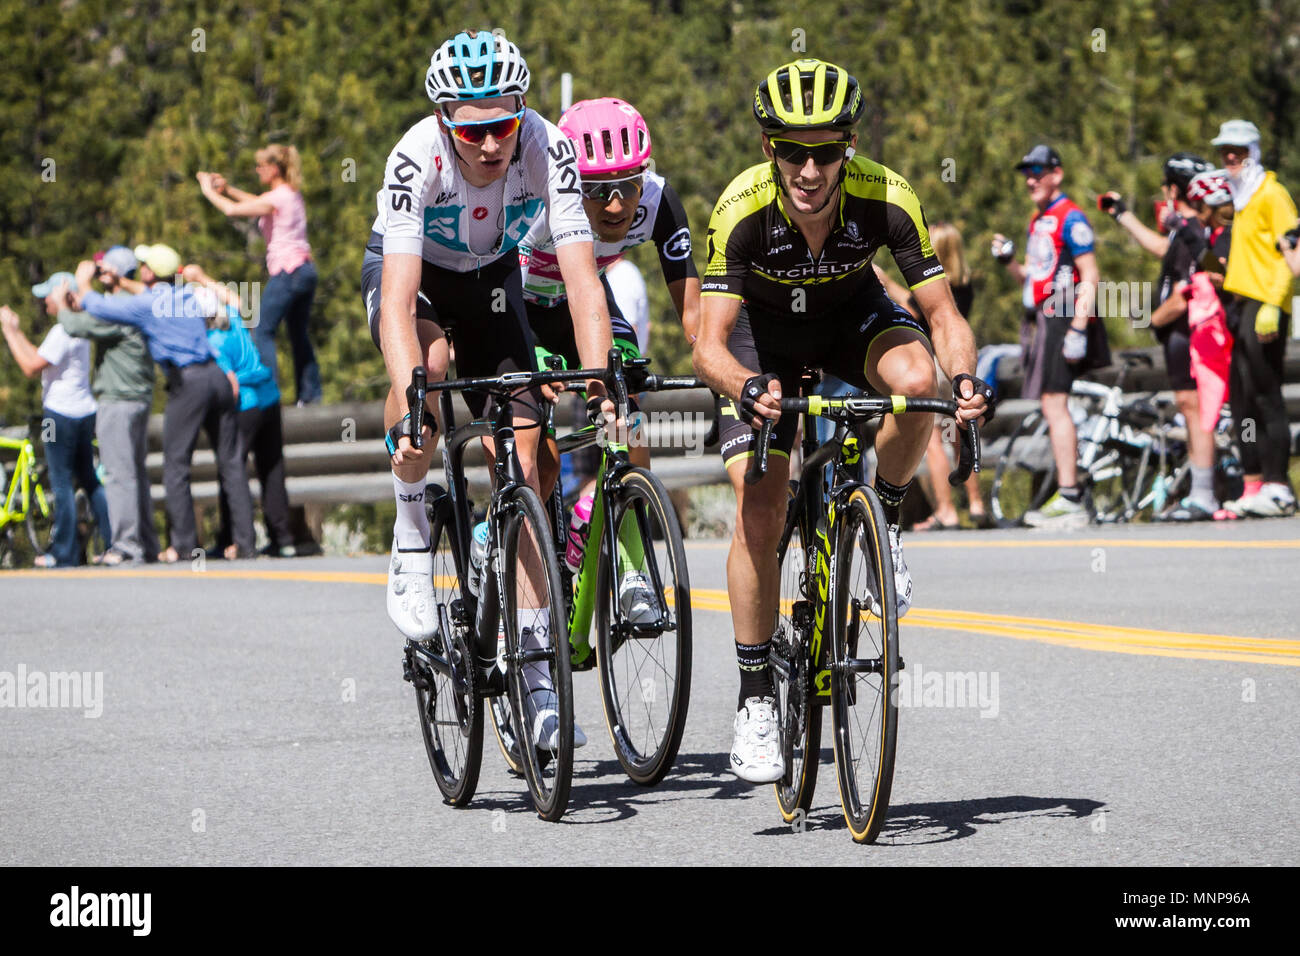 Nevada, USA. 18th May, 2018. A trio of riders approach Daggett Summitt, 7334 ft, along Kingsbury Grade Rd., Nevada, near South Lake Tahoe, during Stage 6 of Amgen Tour of California on Friday, May 18, 2018. Credit: Tracy Barbutes/ZUMA Wire/Alamy Live News - Stock Image